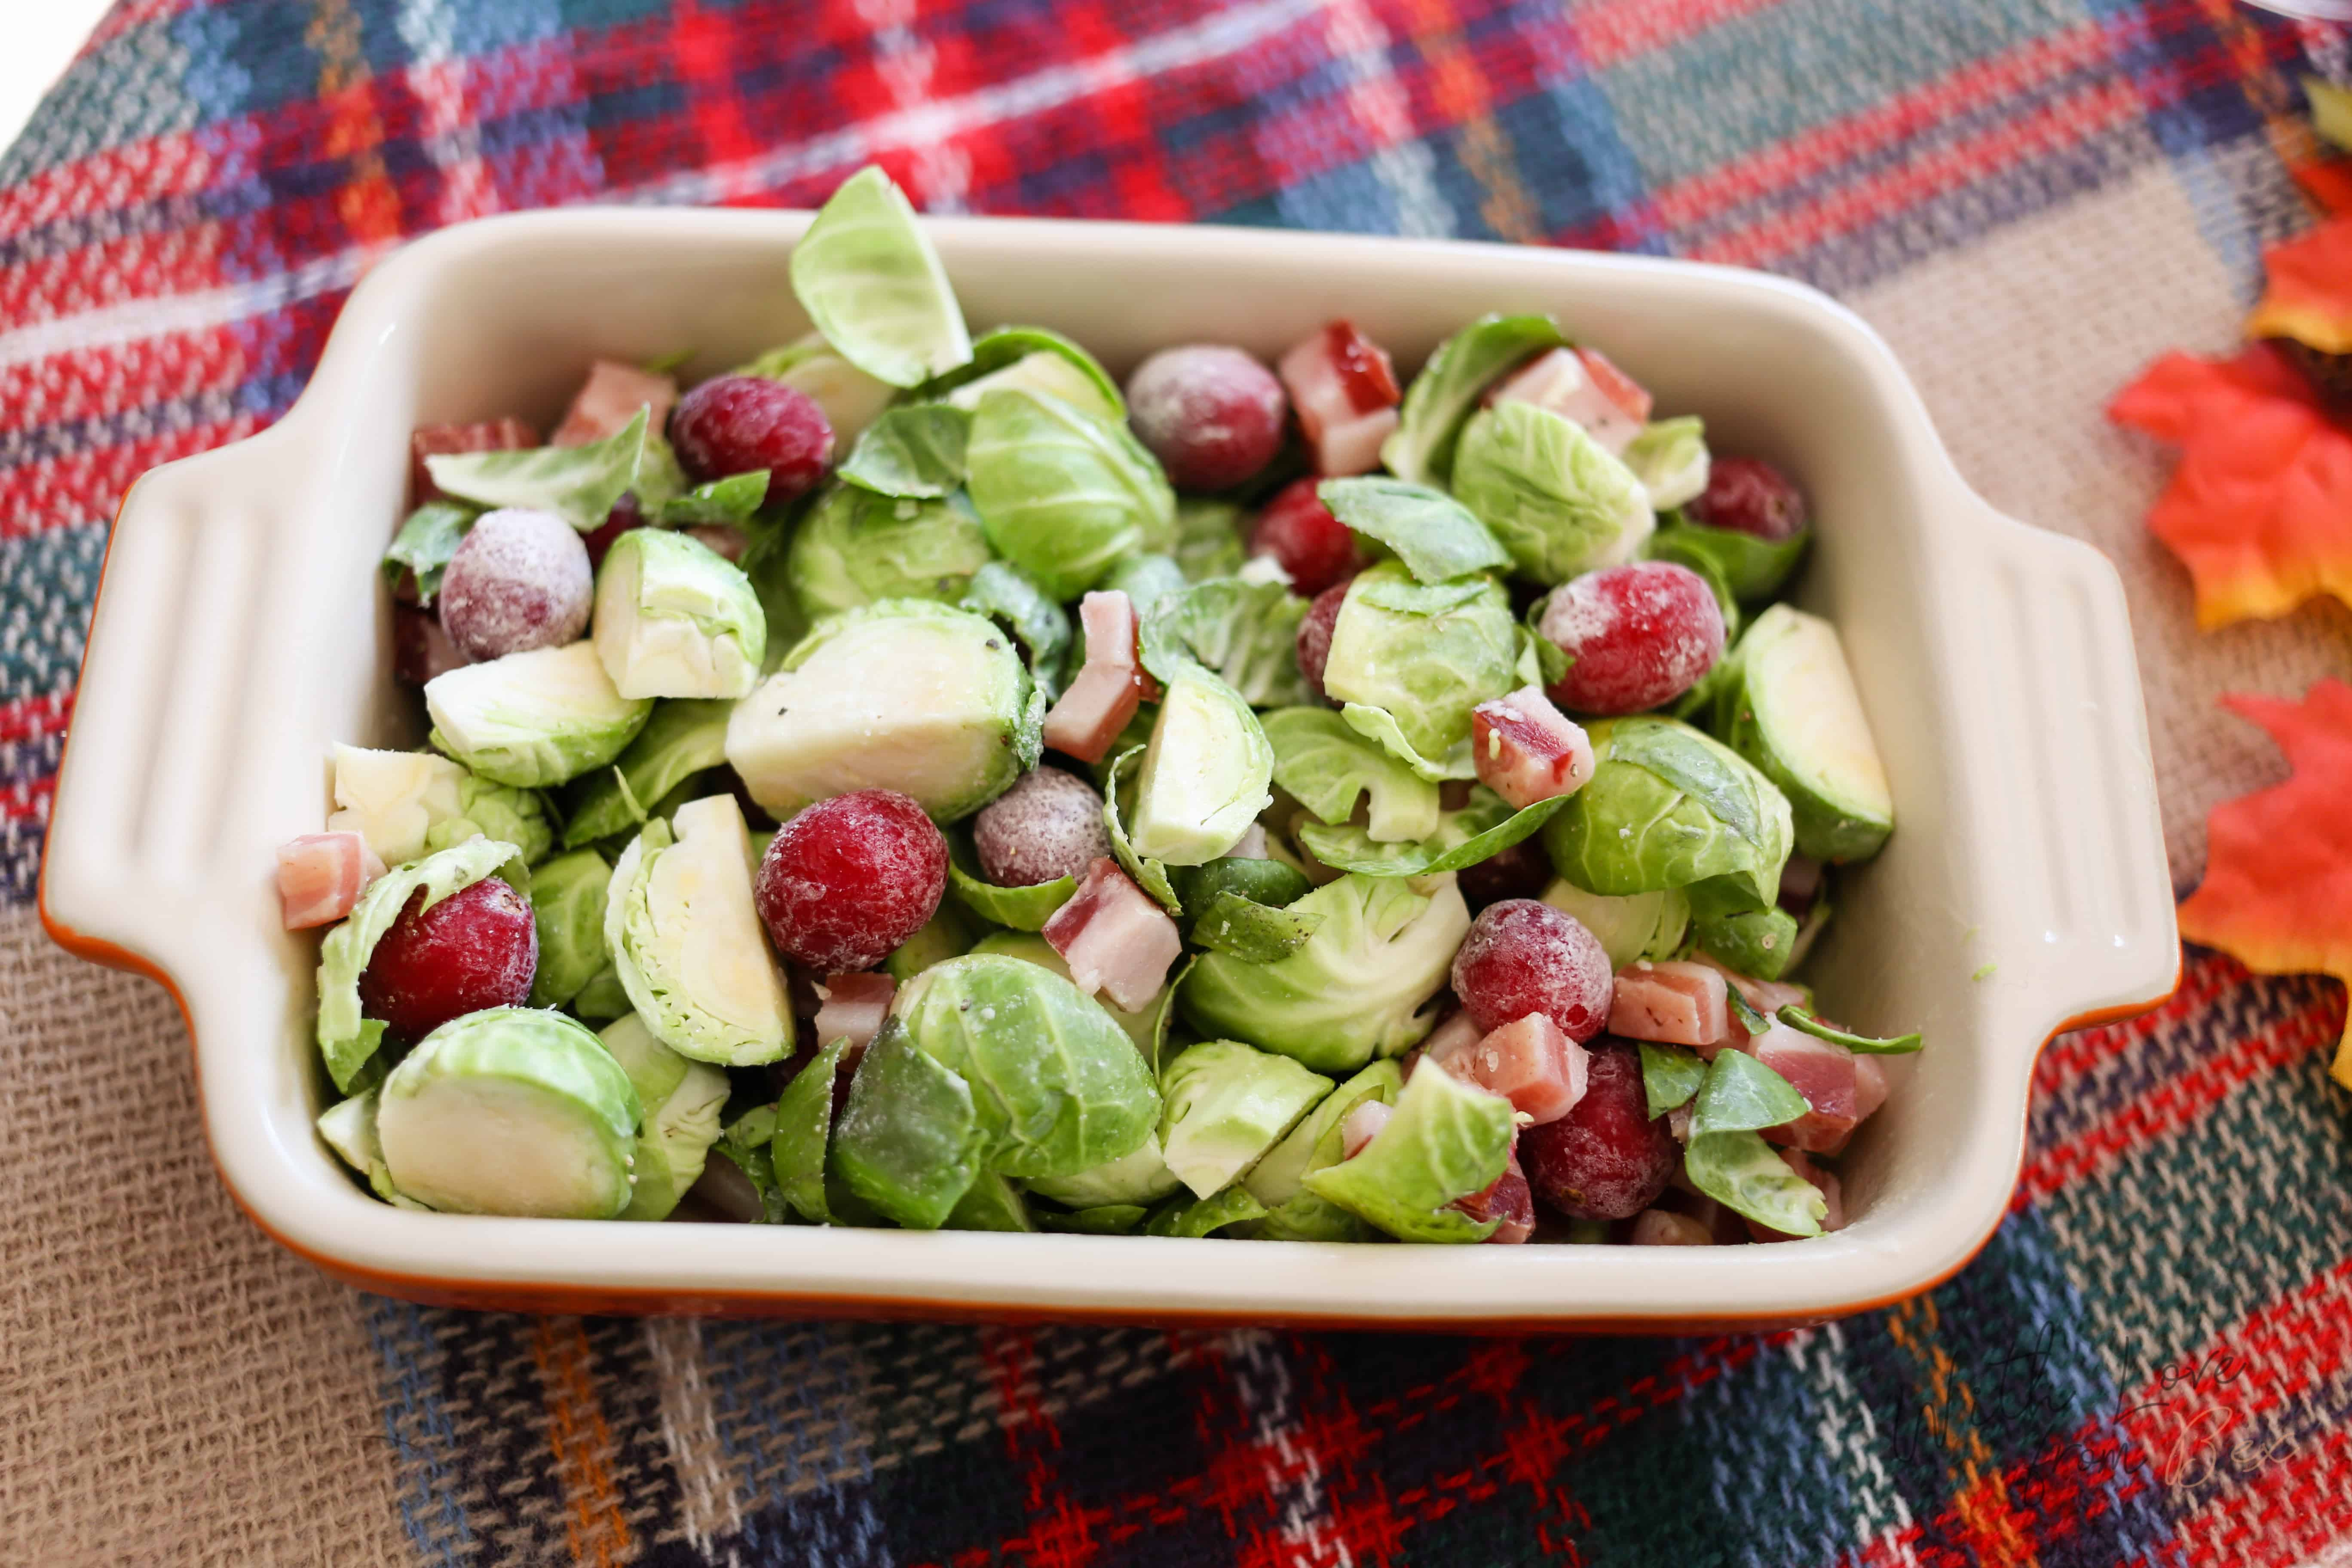 Brussel Sprouts for the holidays